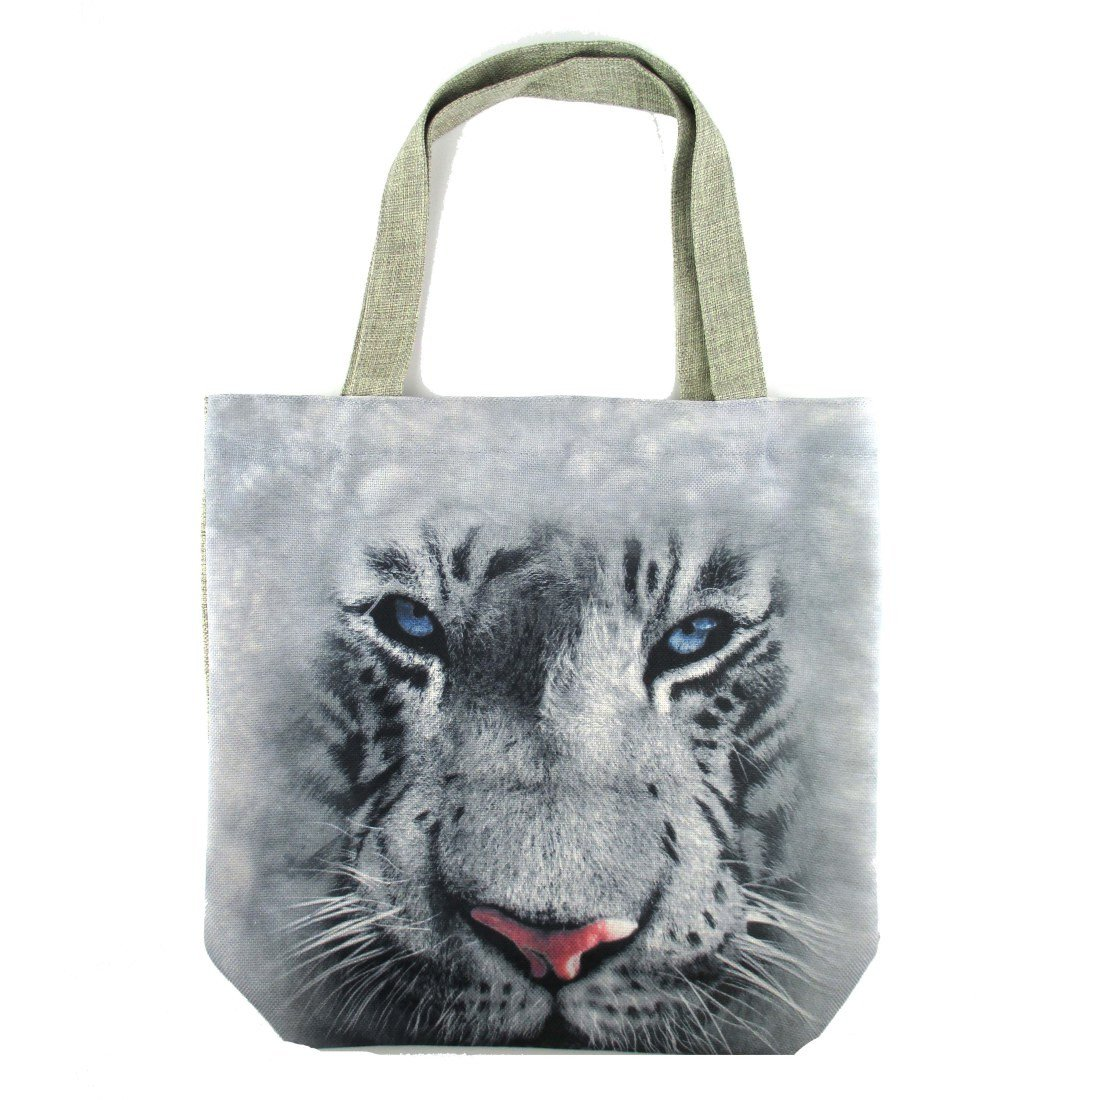 White Bengal Tiger Face Print Fabric Tote Shopper Bag